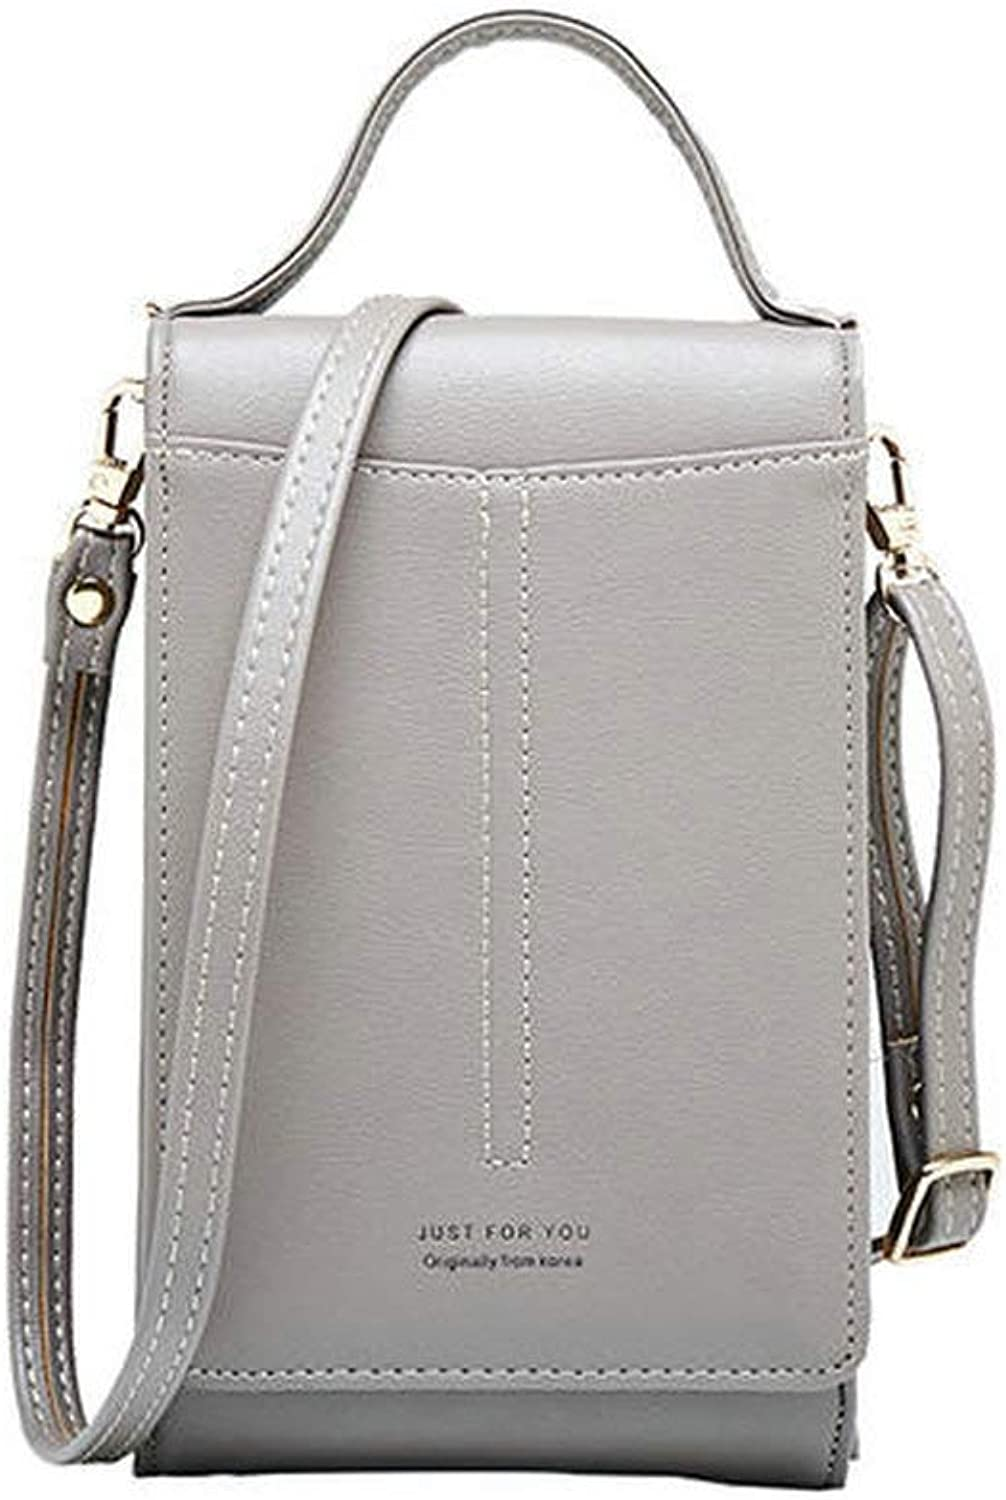 ACHKL Women Portable Multifunction Phone Bag for 6 Inches Cellphone Crossbody Bag Wallet ACHKL (color   color Grey, Size   OneSize)